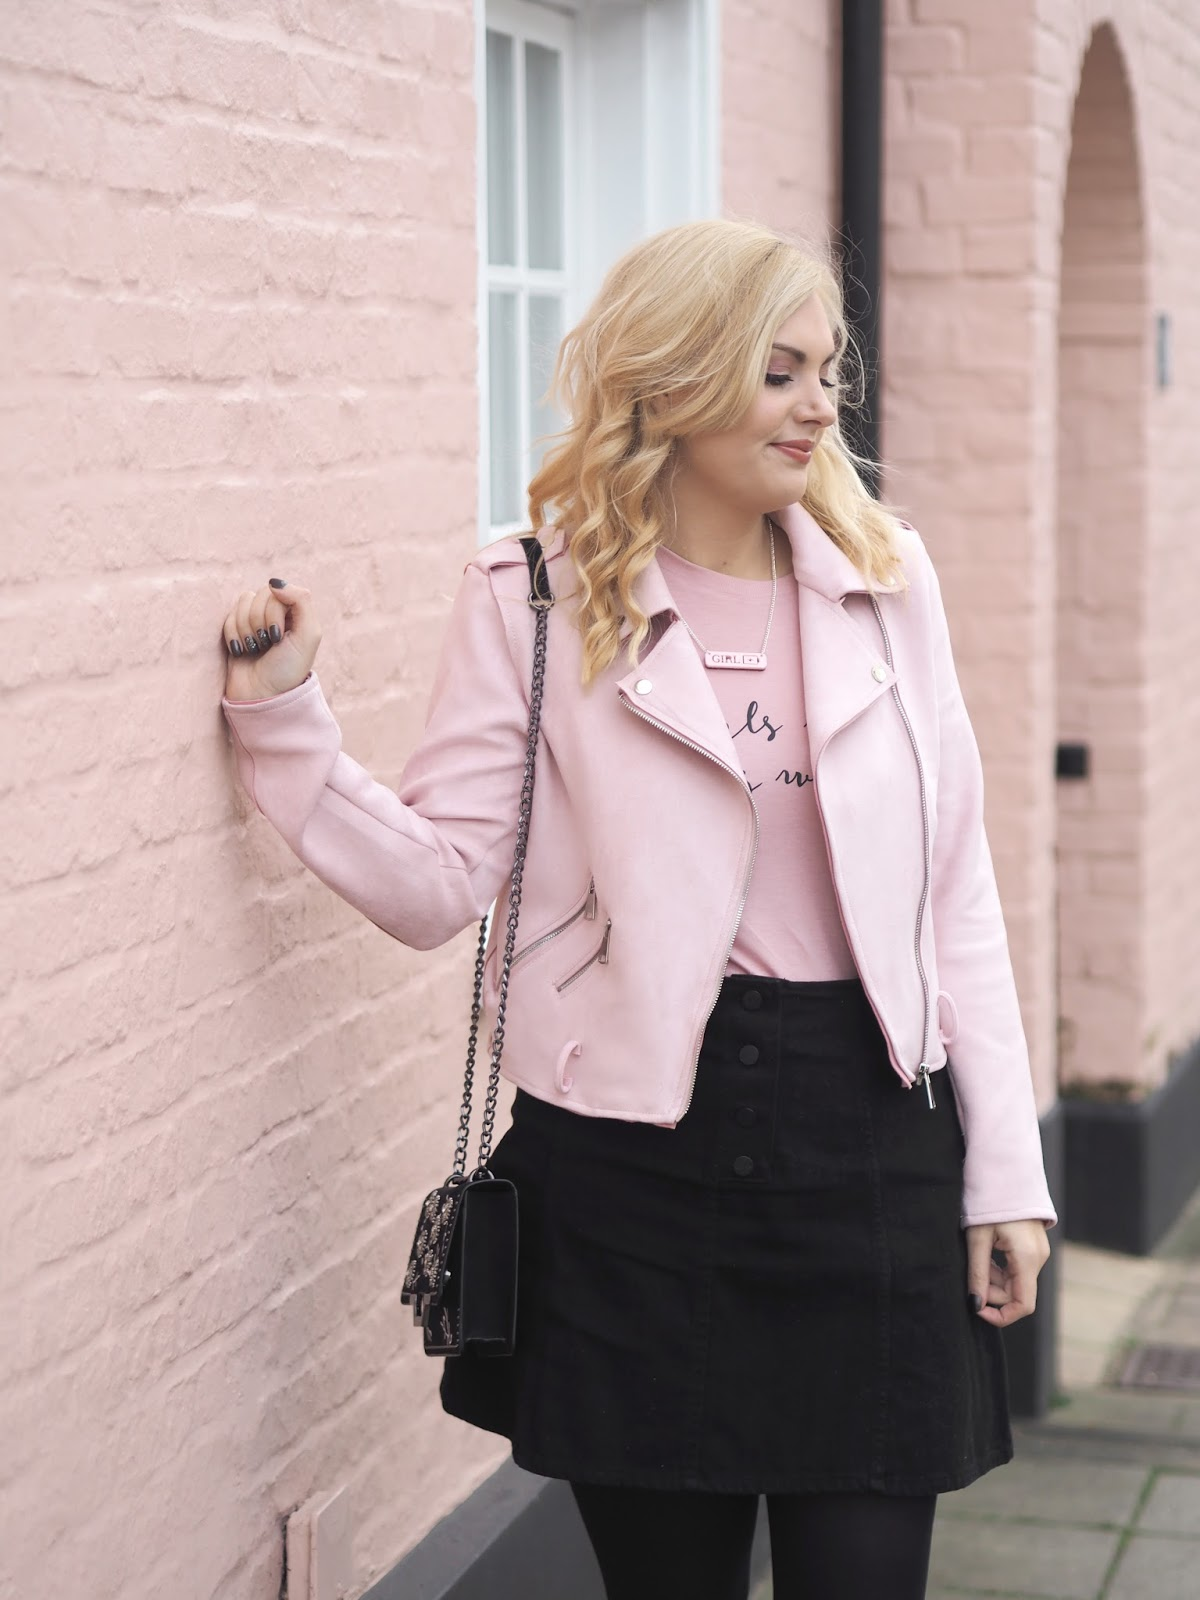 Girls Rule This World: Outfit, Katie Kirk Loves, UK Blogger, Fashion Blogger, Style Blogger, Outfit Post, Pink Fashion, Pink Outfit, Pink Style, Street Sryle Fashion, Pink House, Handmade Jewellery, Etsy Jewellery Etsy Shop, Christmas Gift Ideas, Girl Power Outfit, Outfit Of The Day, Style Influencer, Fashion Influencer